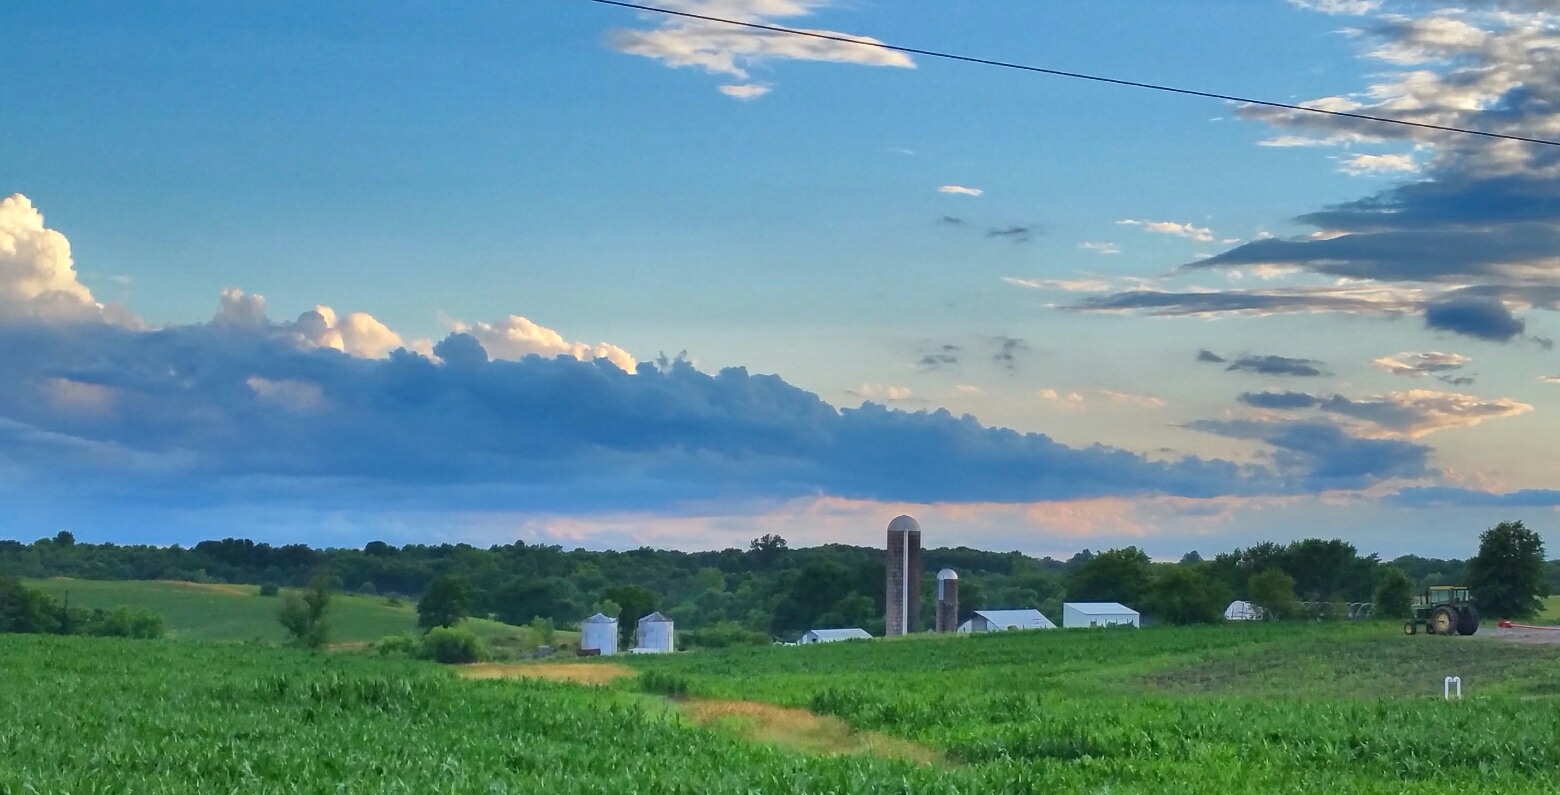 A field and silos